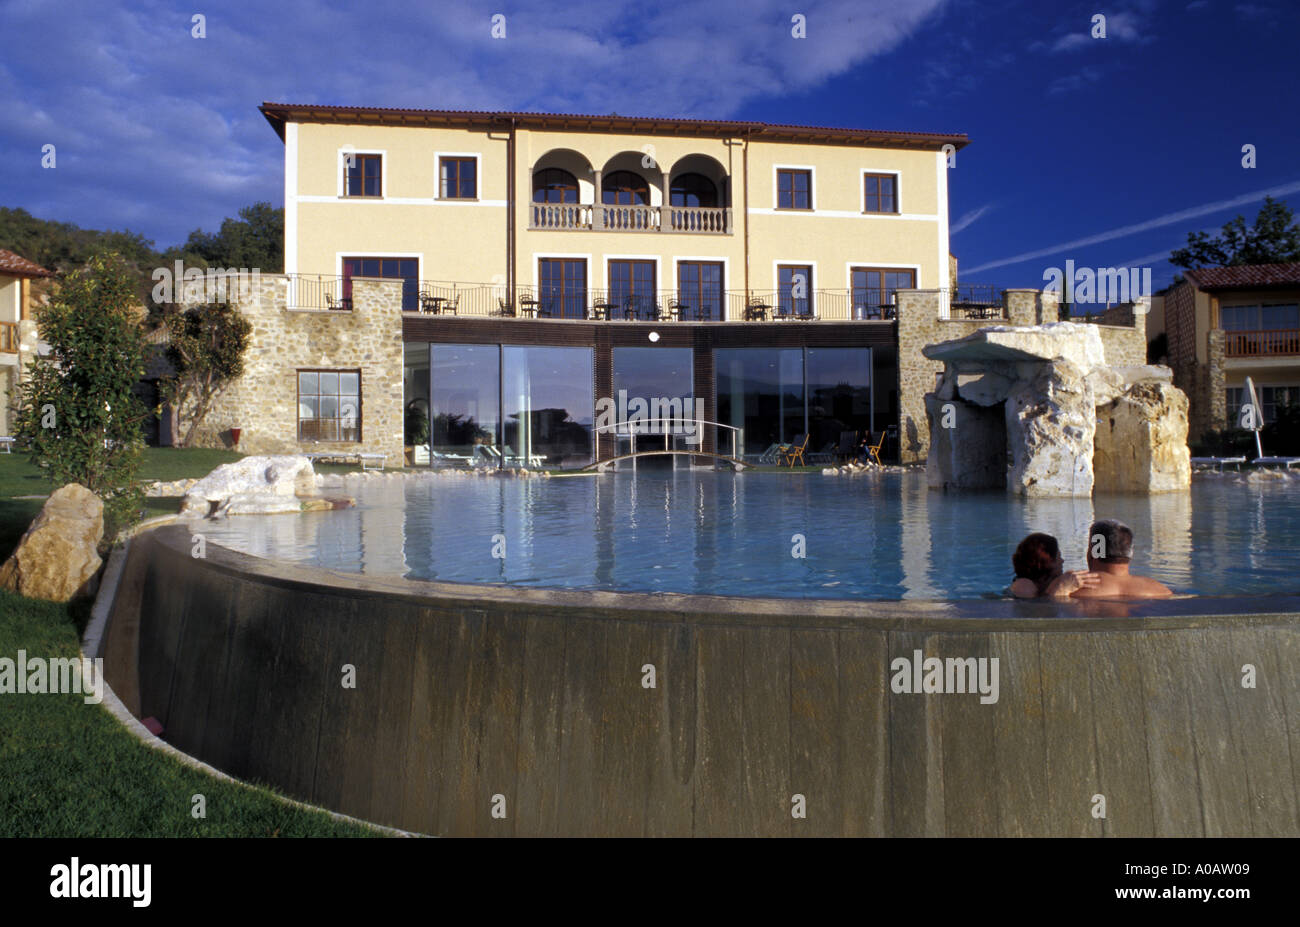 Hotel Adler Thermae Bagno Vignoni Tuscany Italy Stock Photo, Royalty ...